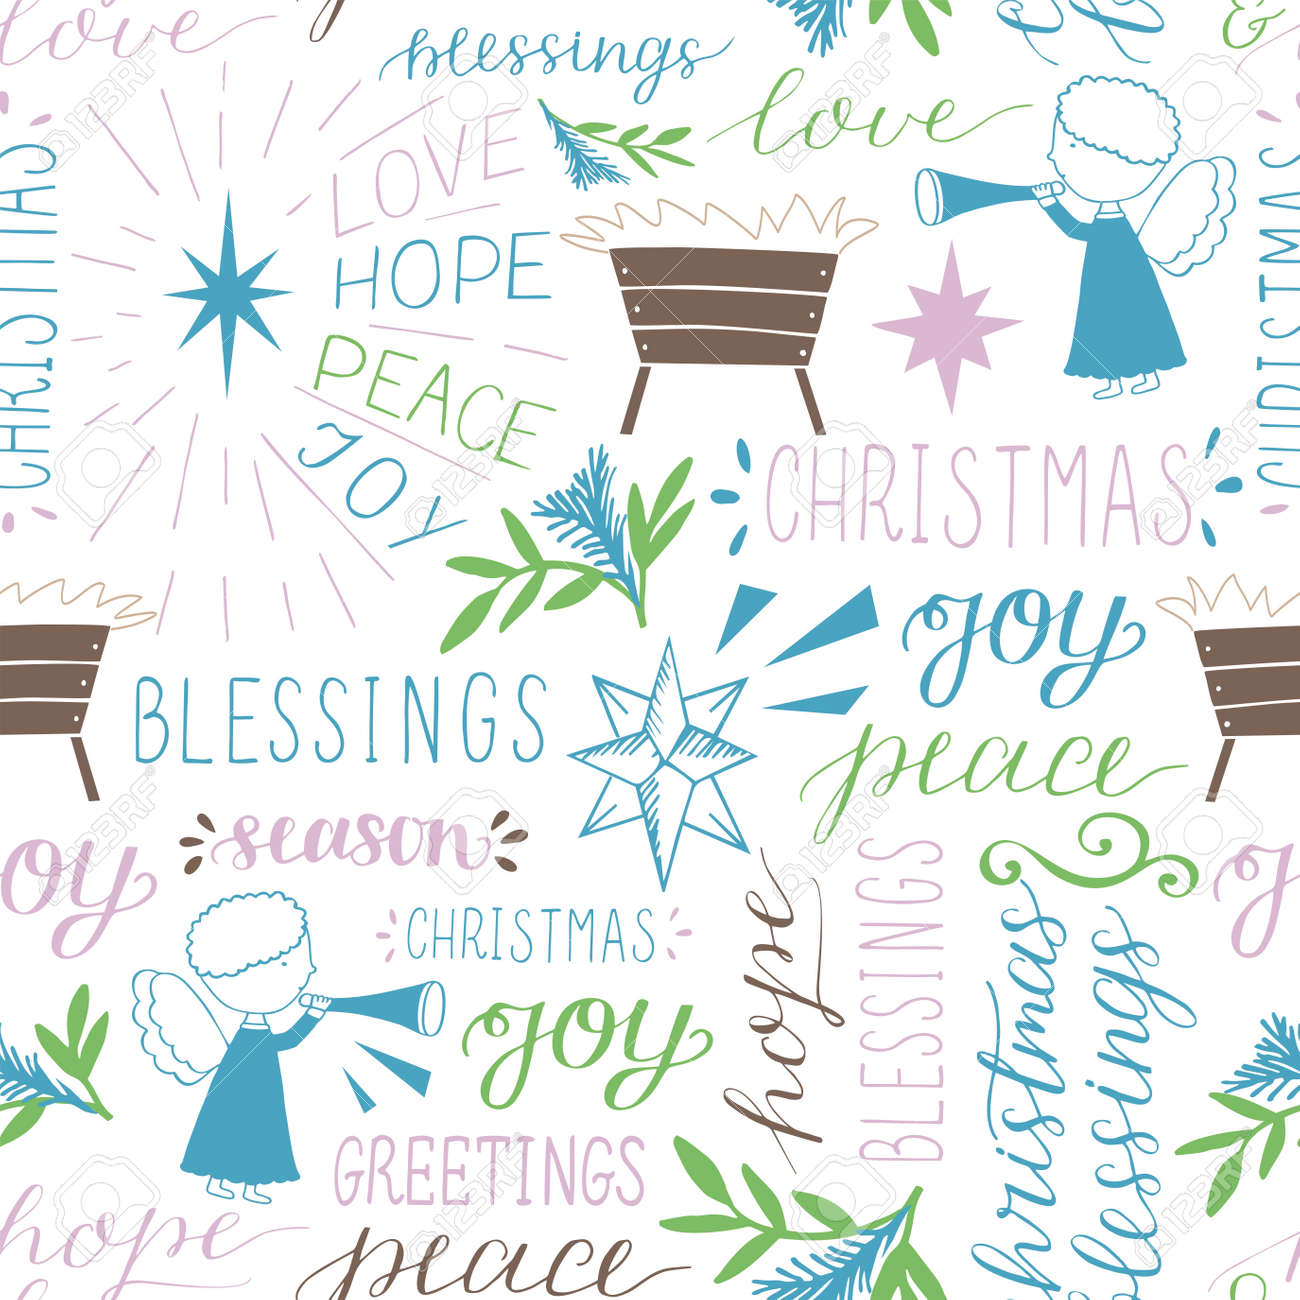 Seamless christmas pattern with hand drawn words Love, Hope, Peace, Joy, Greetings, Blessings, stars and Angels. - 155929846